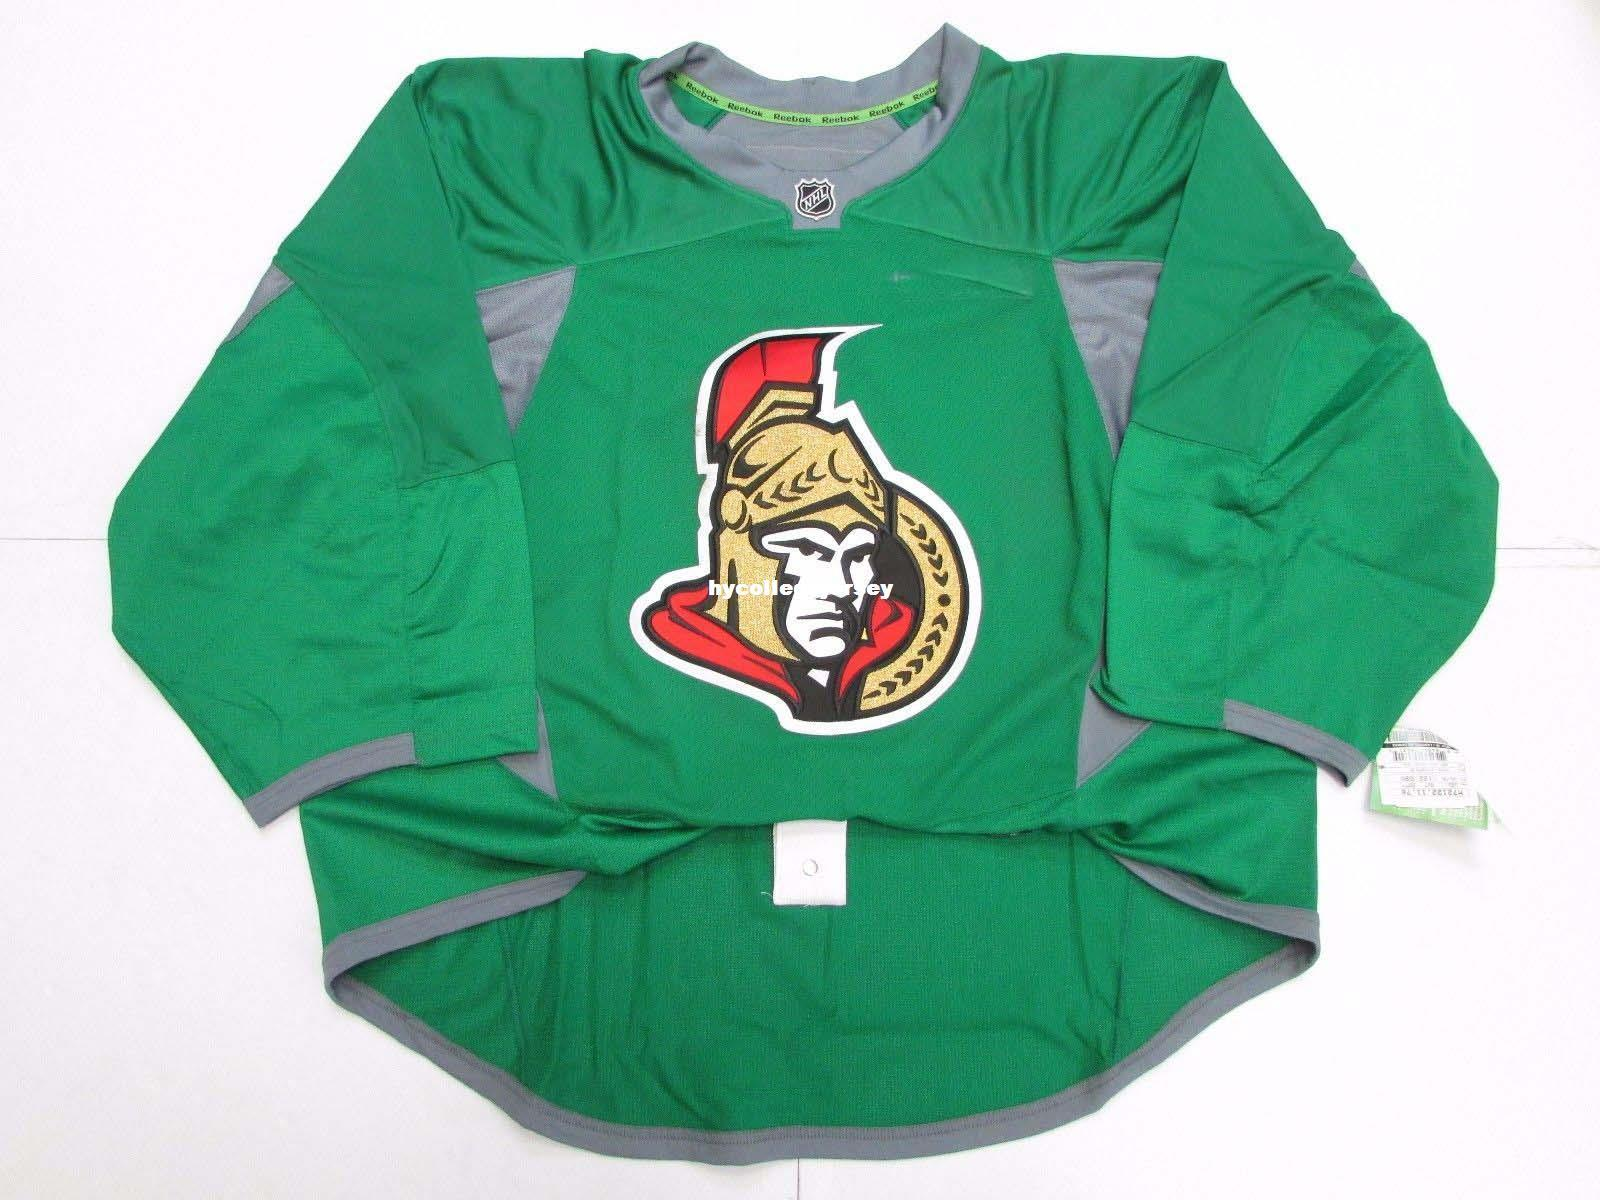 promo code 50496 13b0c Cheap wholesale Custom OTTAWA SENATORS GREEN EDGE PRACTICE JERSEY GOALIE  CUT 60 Mens Stitched Personalized hockey Jerseys